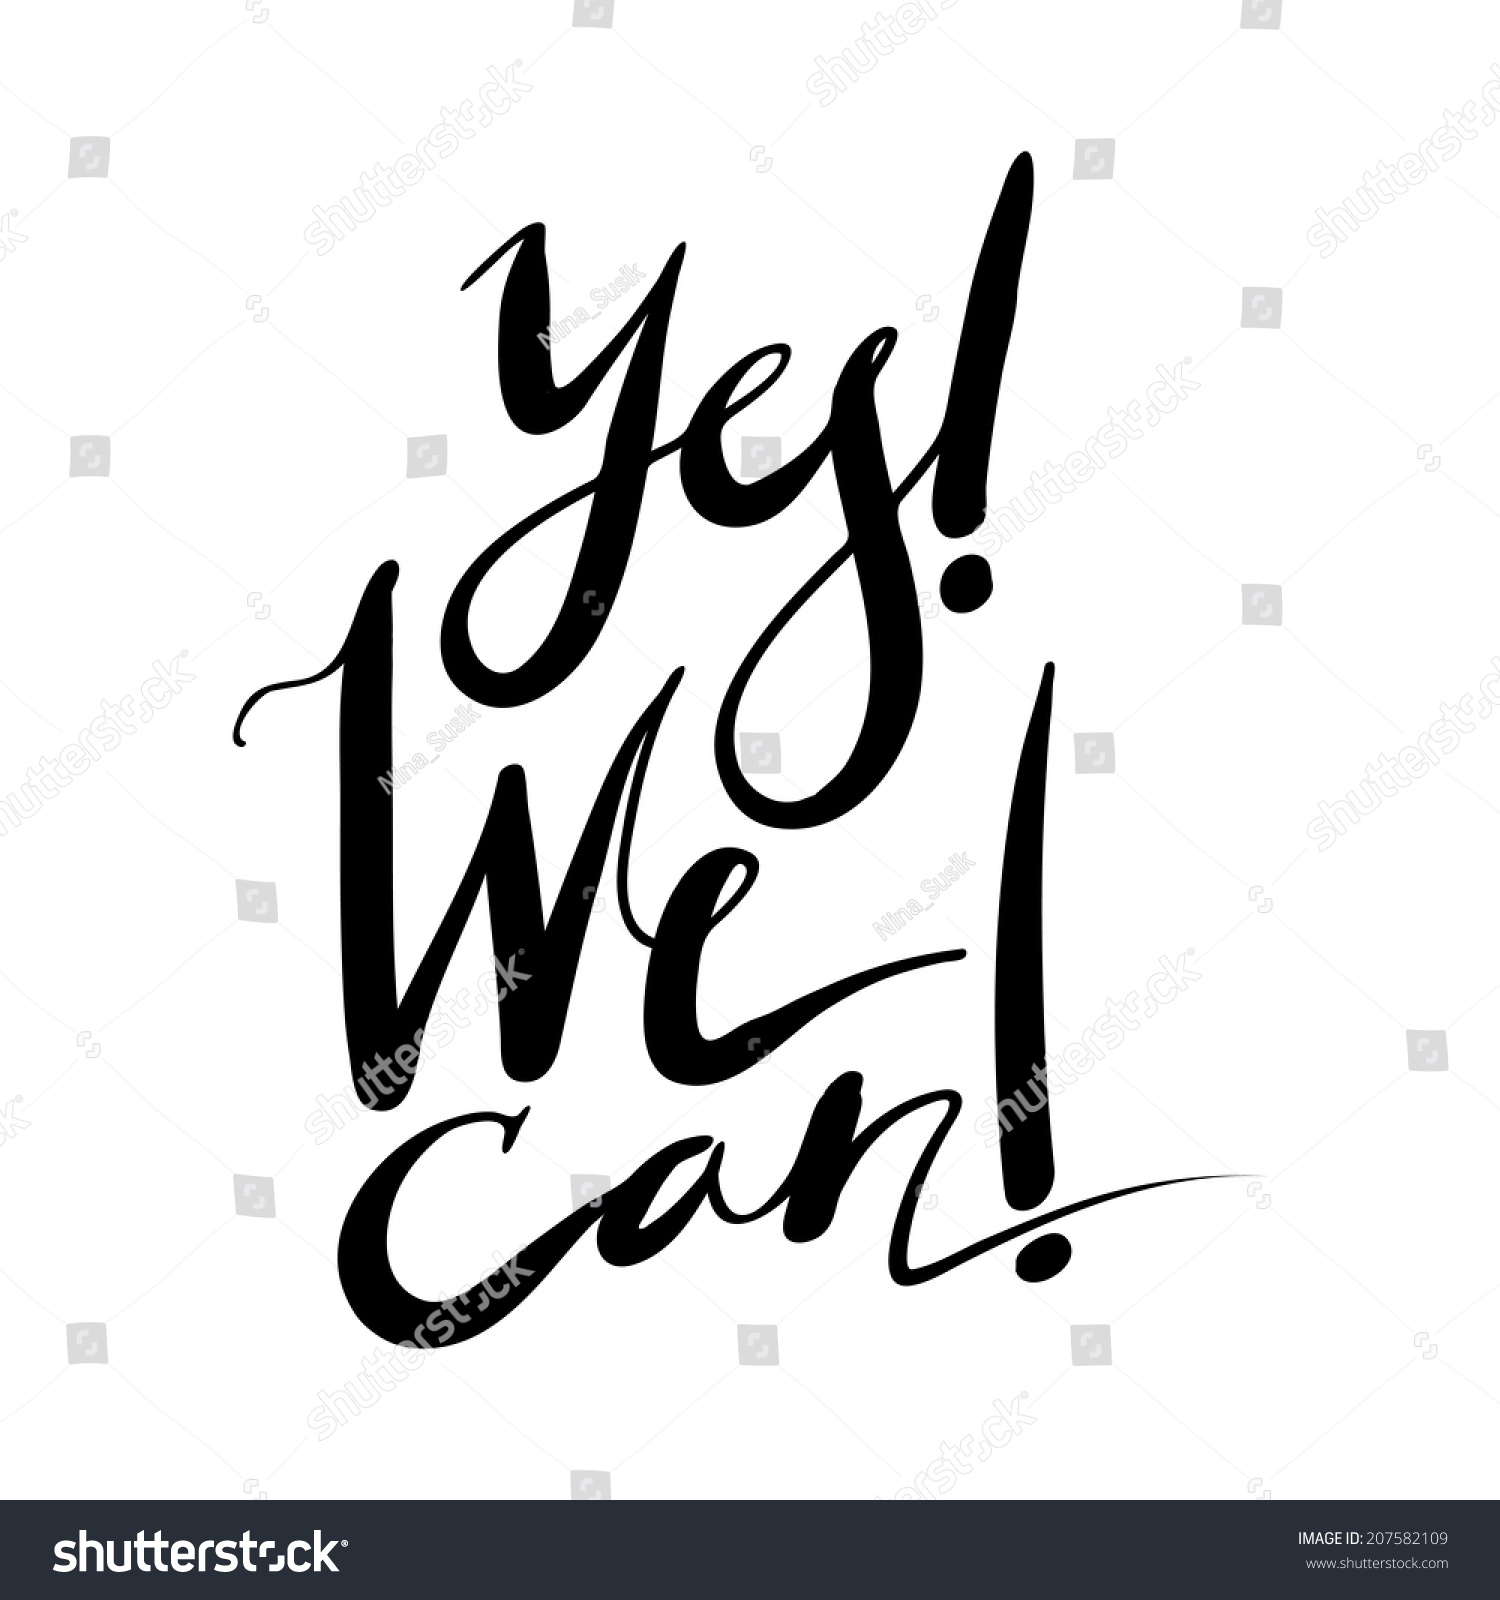 Yes we can expression hand lettering stock vector